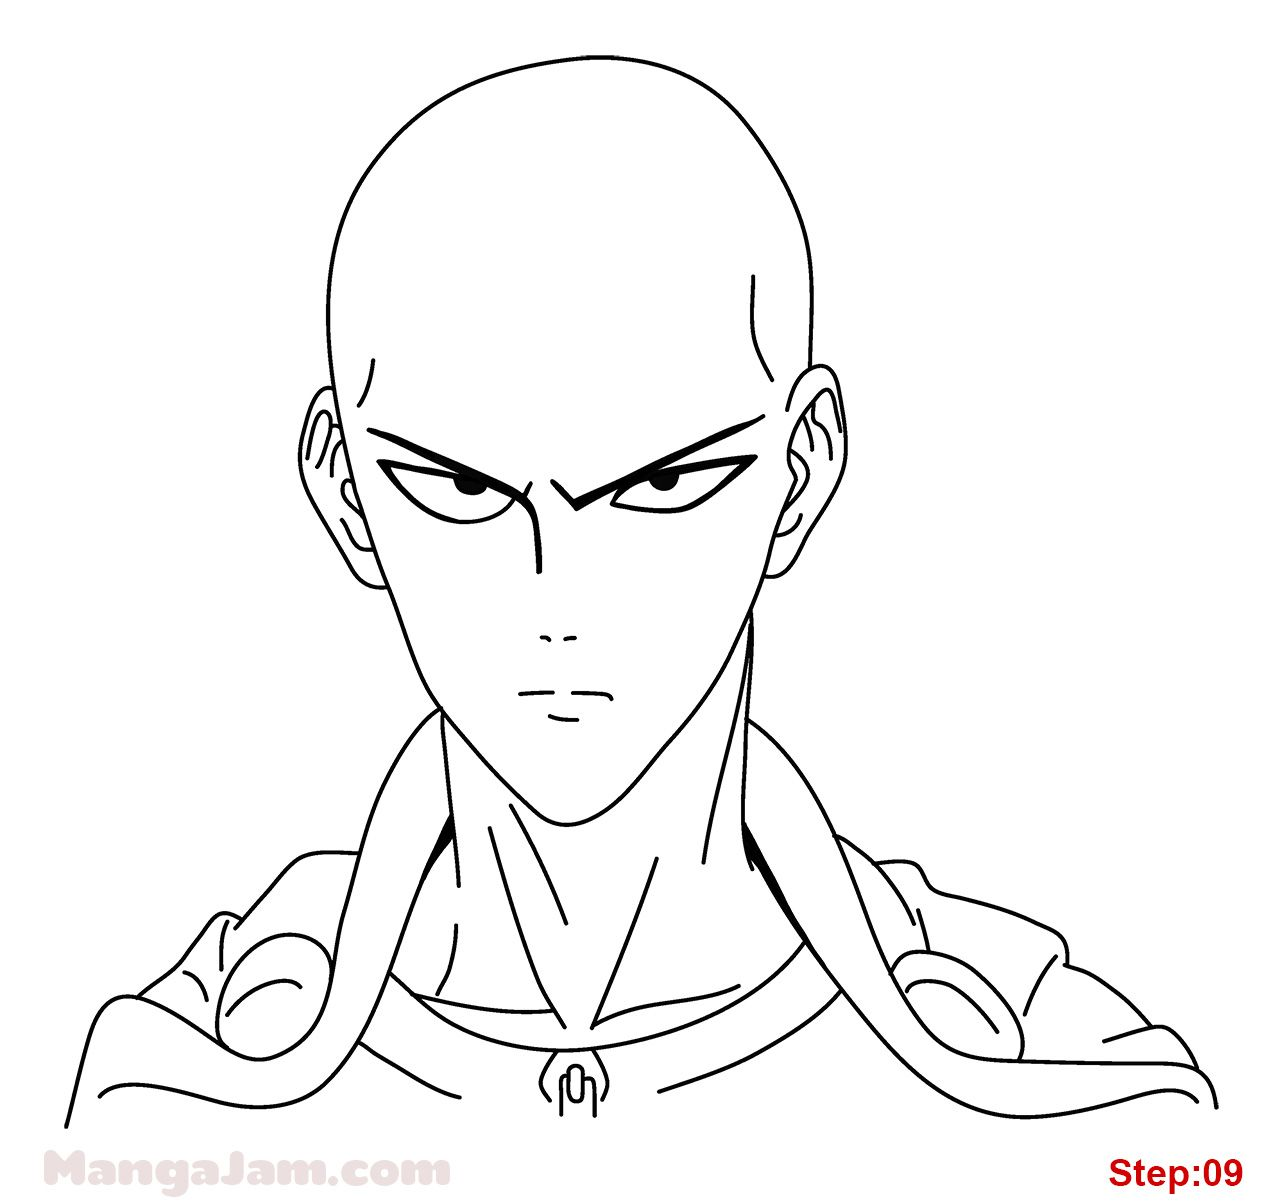 How To Draw Saitama From One Punch Man Mangajam Com In 2020 One Punch Man Anime Saitama One Punch Man Saitama One Punch